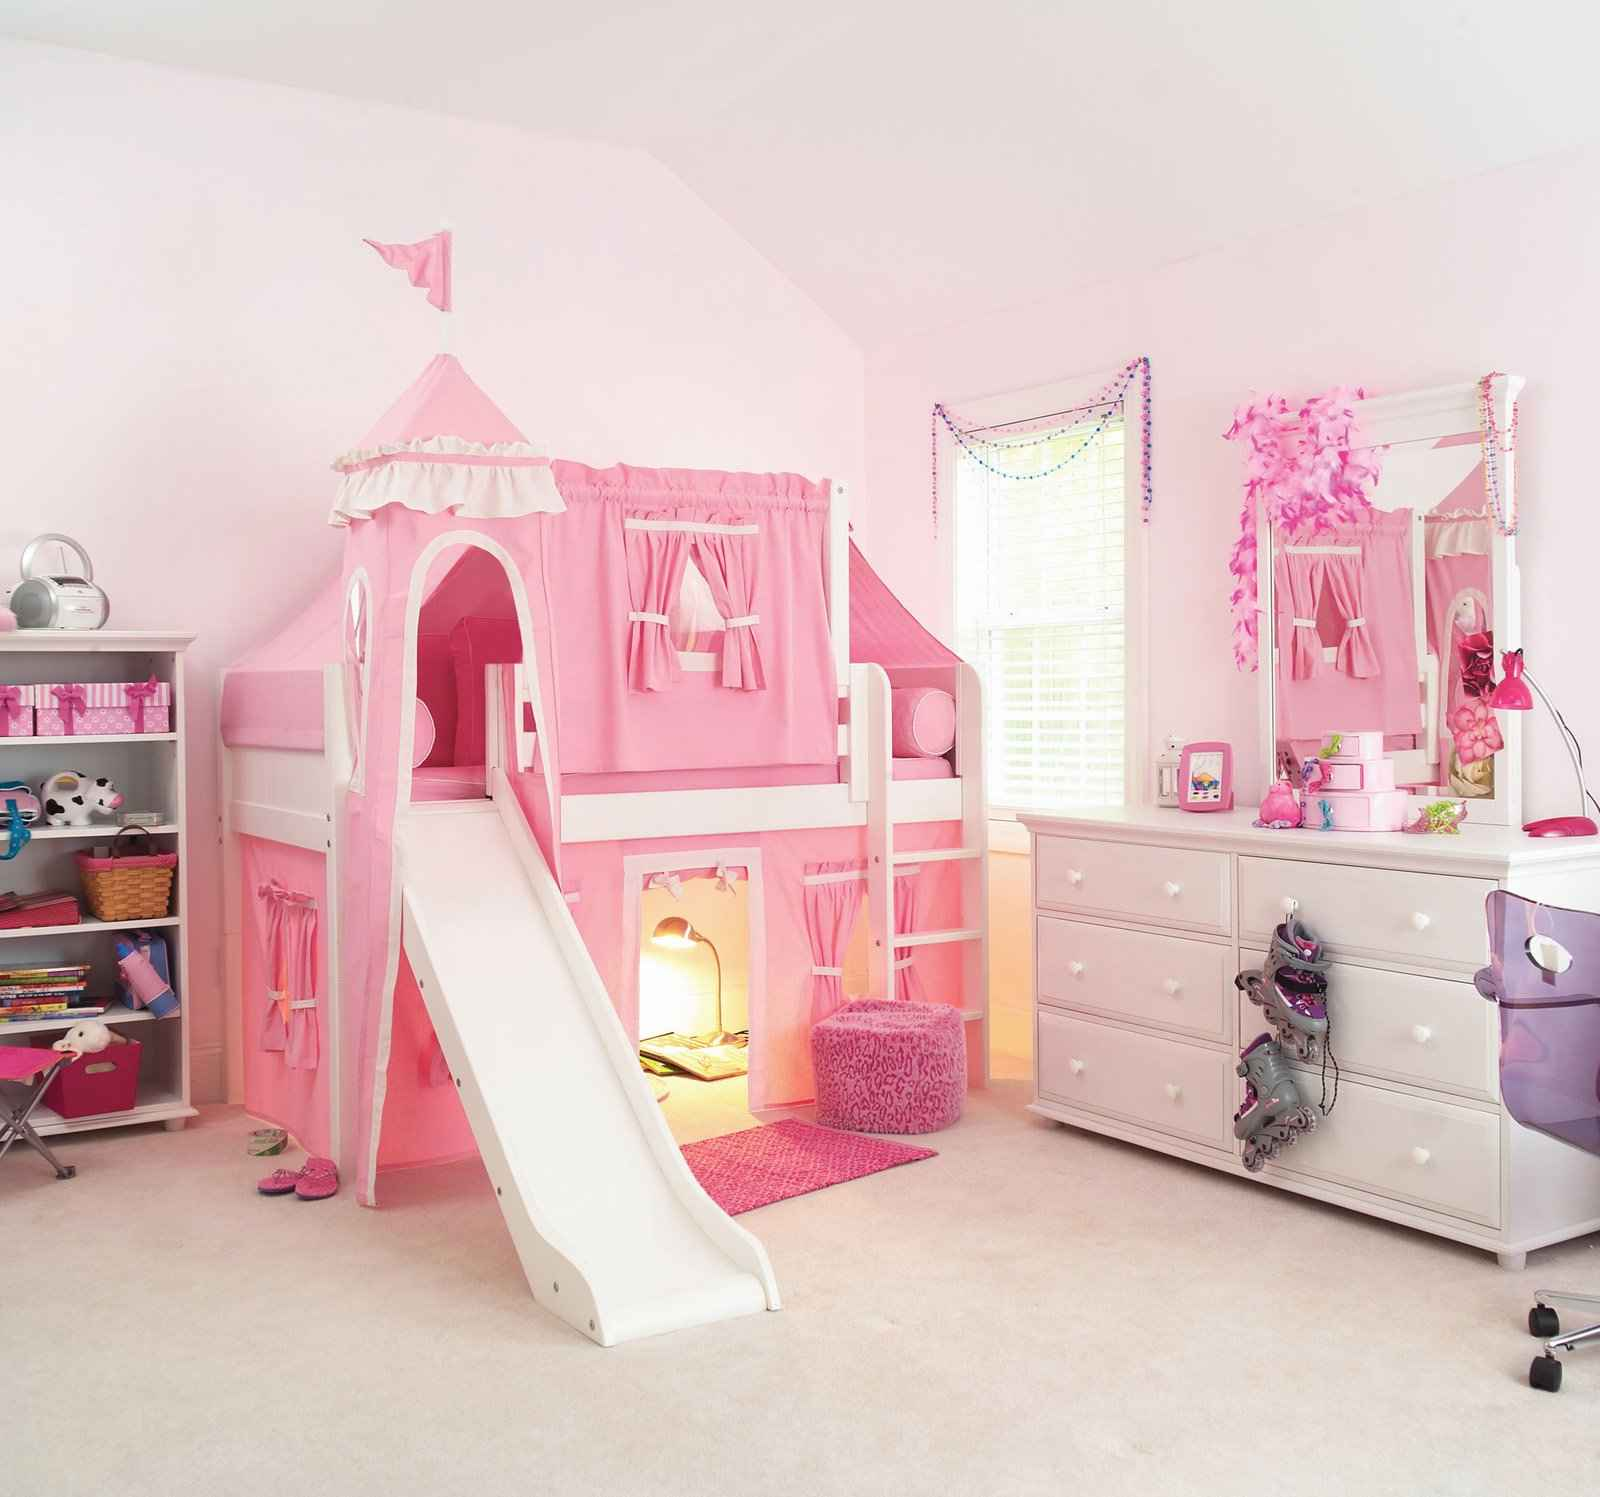 Ideal design concepts for loft beds for girls small room for Cool beds for small bedrooms